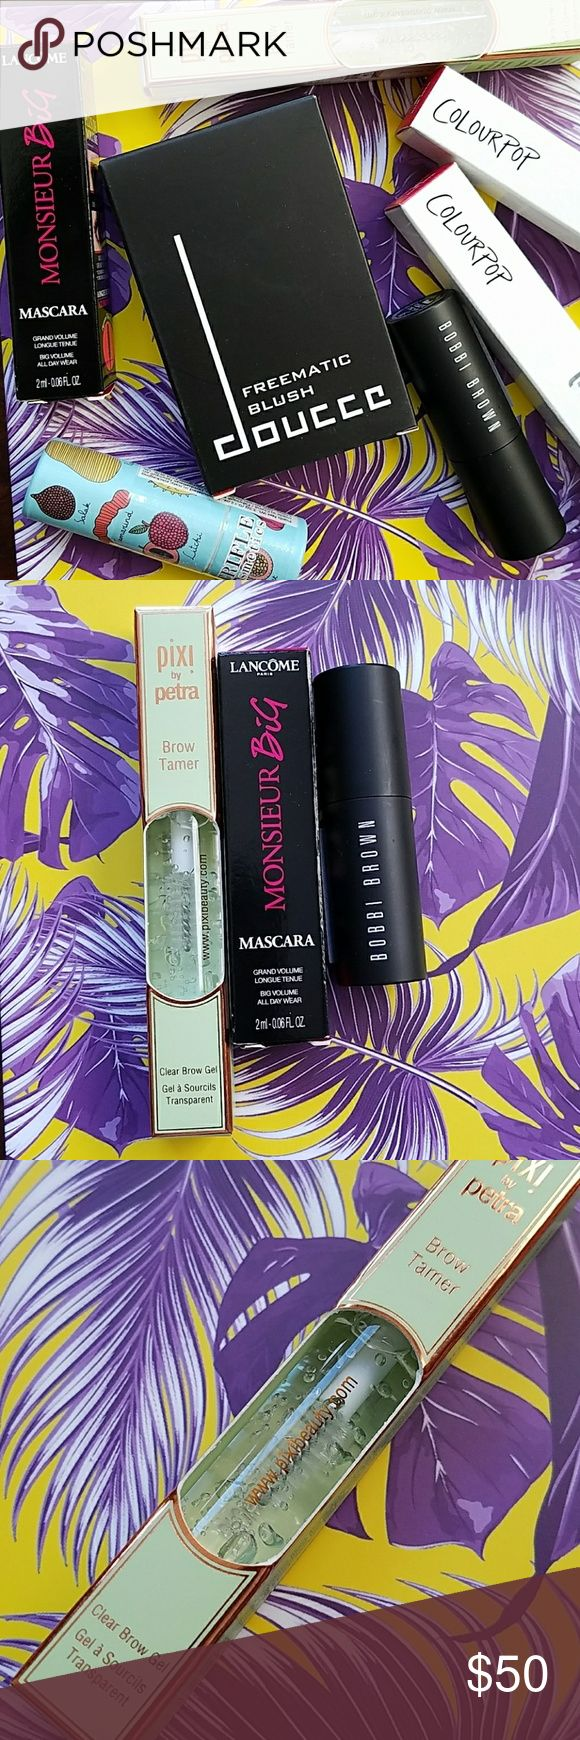 Put Your Best Face Forward Bundle Full sized/deluxe sample makeup in tropical print Glossybox. All products are new, never swatched, from Sephora and Glossybox. August Play! card included.   X2 Colourpop in Speed Dial & Wednesday, 3.2 g Trifle Lip Parfait in Exotic Fruits, 3.5 g Doucce Freematic Blush, colors not labeled but  probably Pink Beach and Summer Sunset.  Pixie Brow Tamer, clear, 0.15 oz. Monsieur Big mascara in 01, 0.06 oz. Bobbi Brown Eye Opening mascara in Black, 0.17 oz…